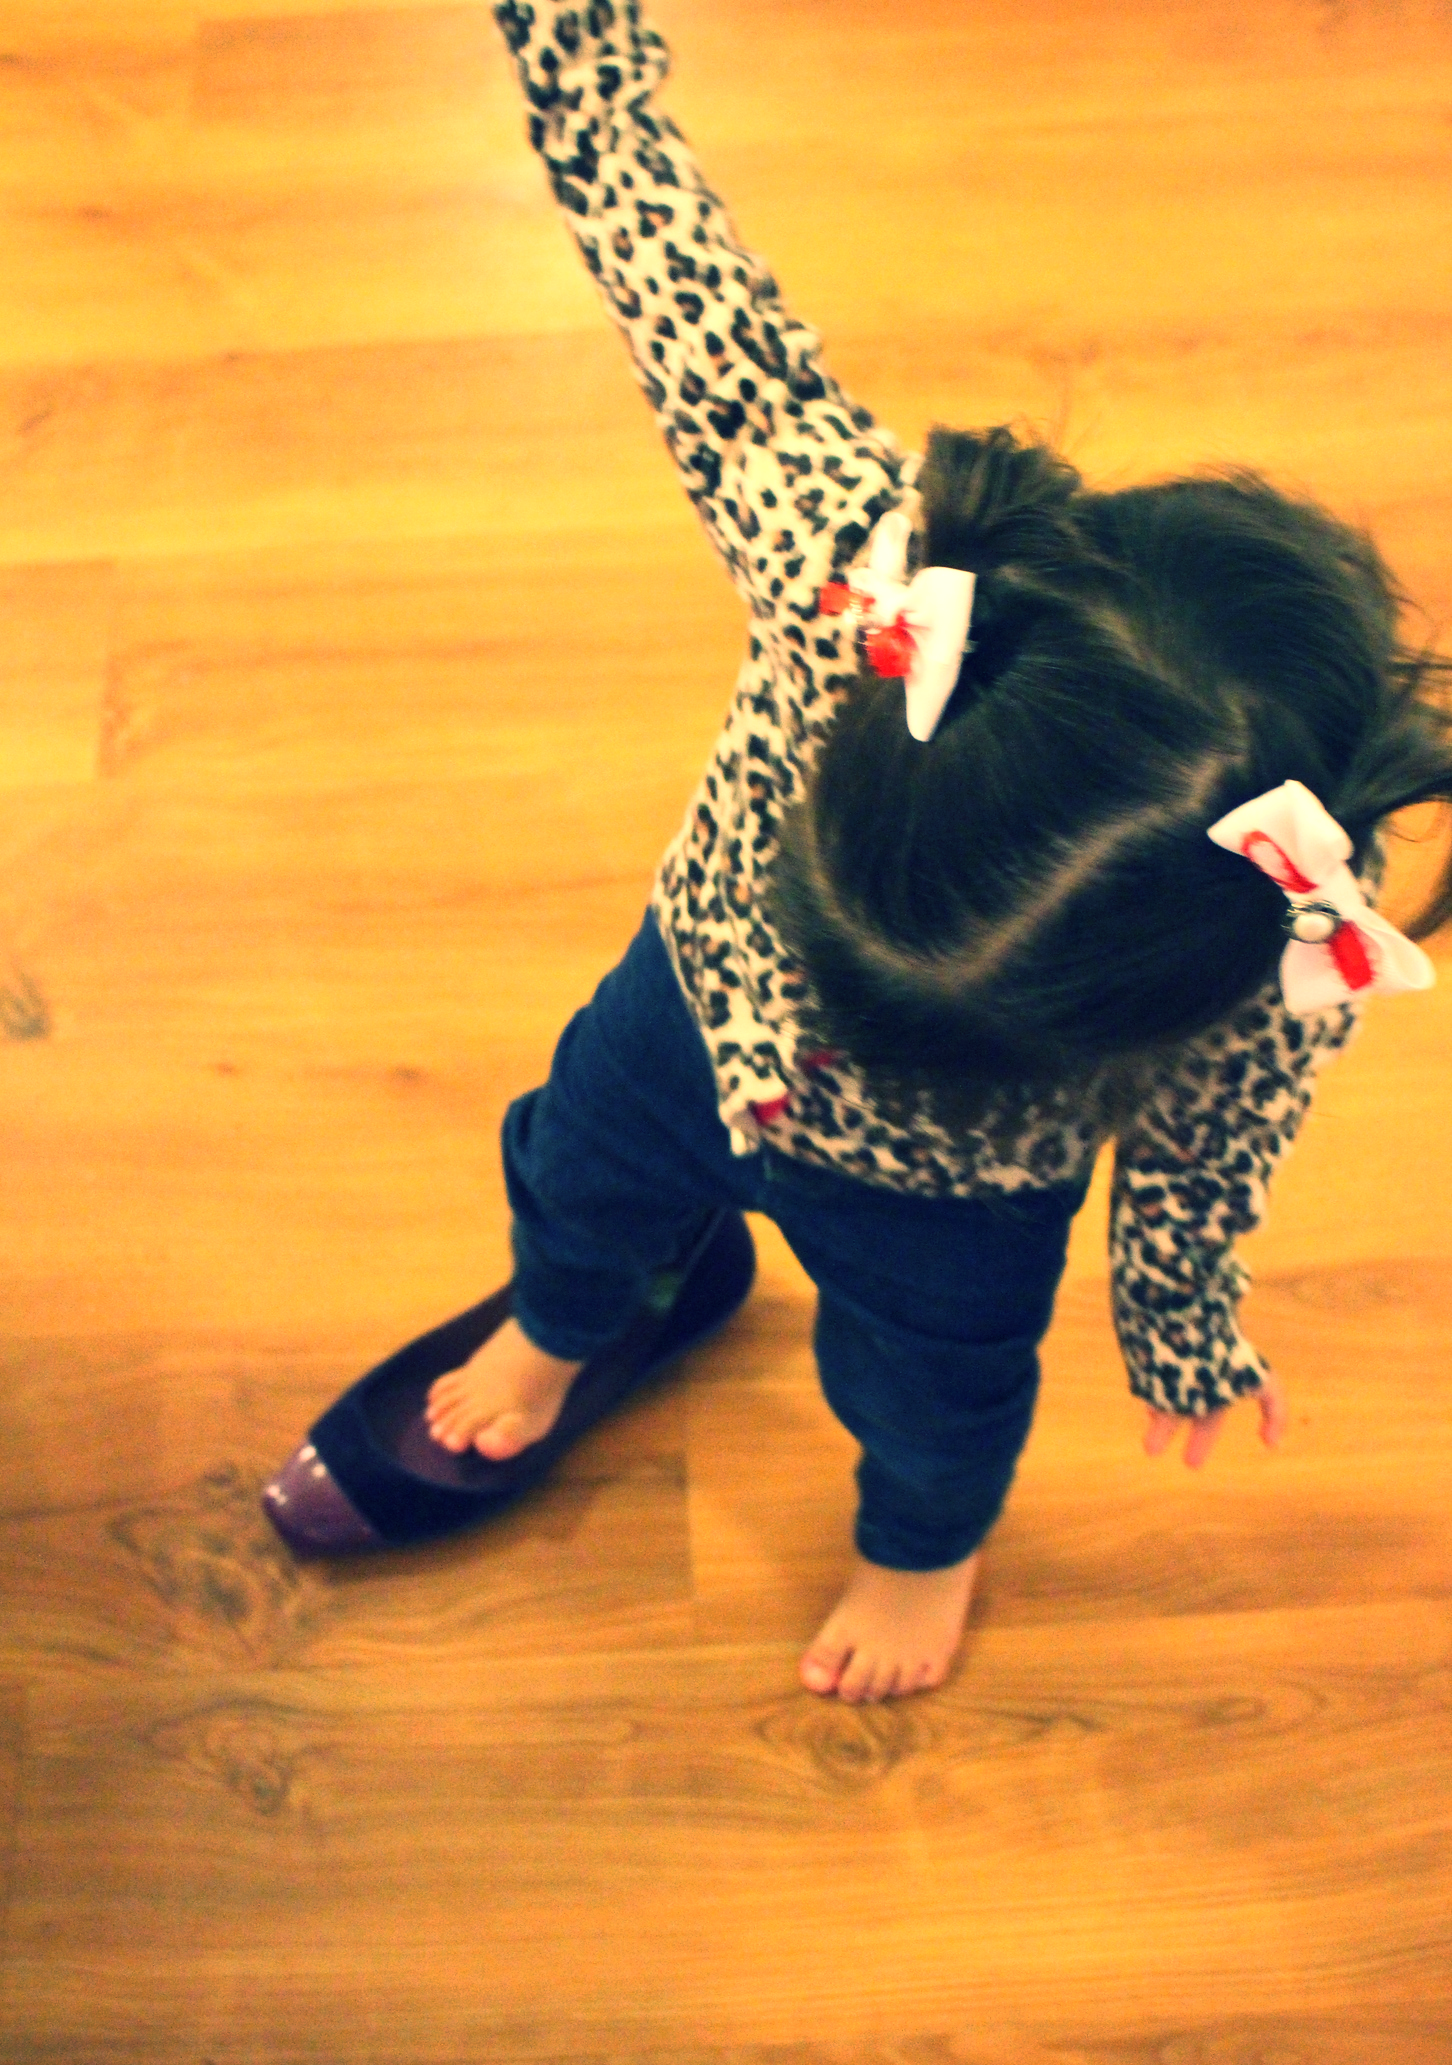 Her latest fixation: shoes.